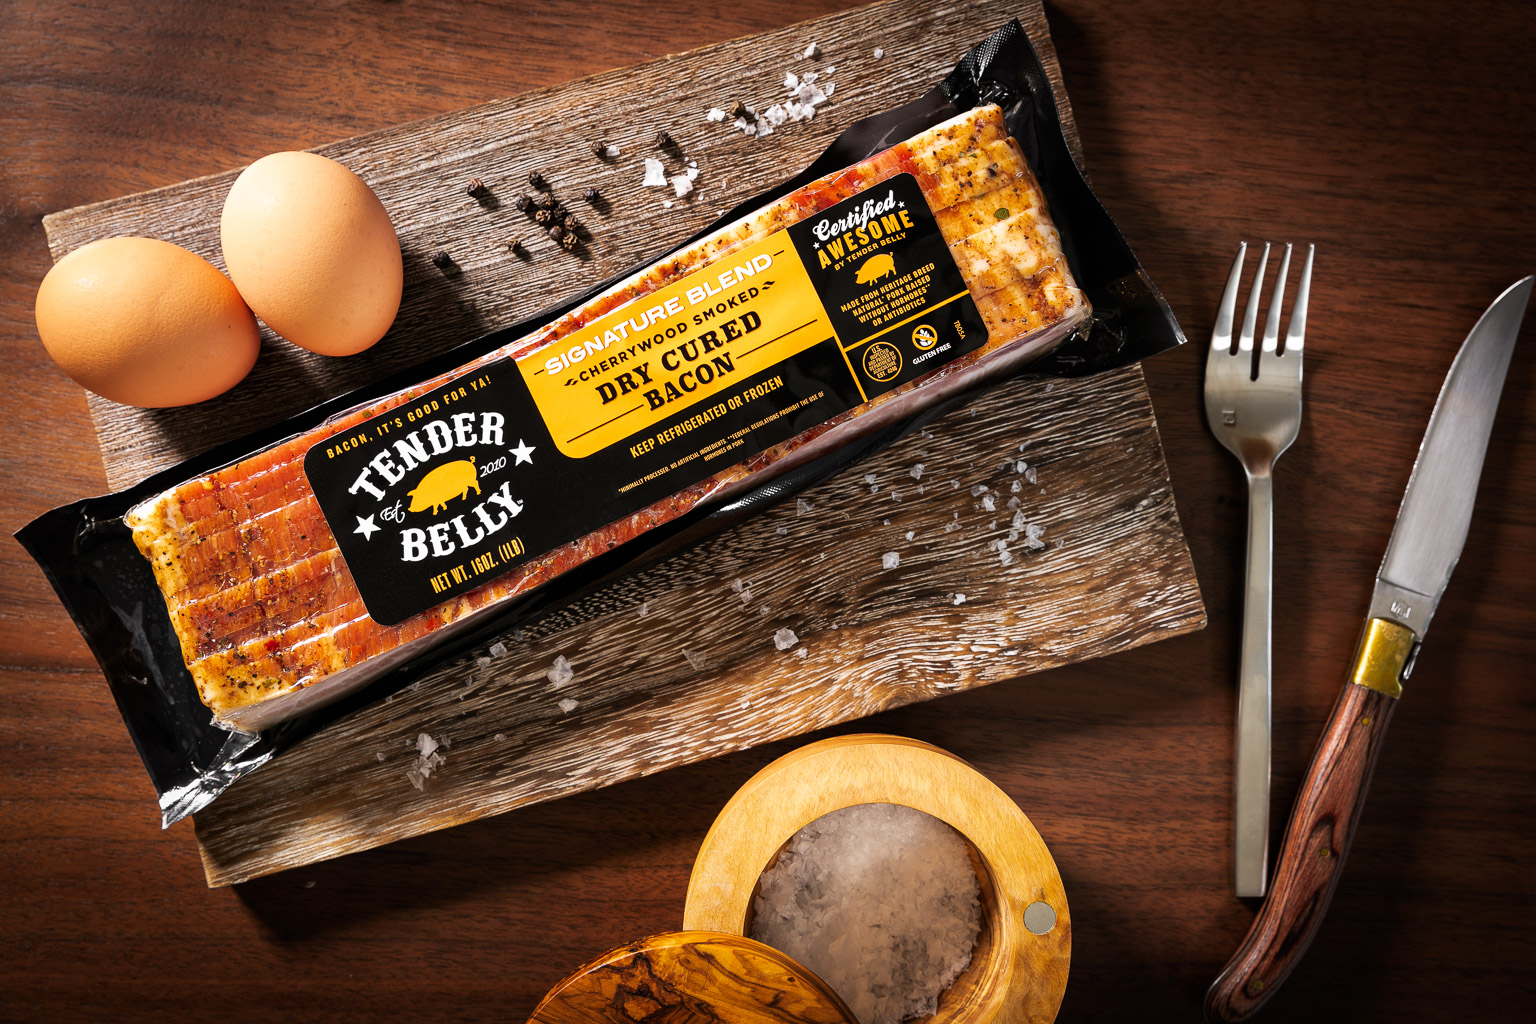 Packaged Tender Belly Cherrywood Smoked Dry Cured Bacon on a wood cutting board with eggs, salt and pepper shot on location in Denver, CO